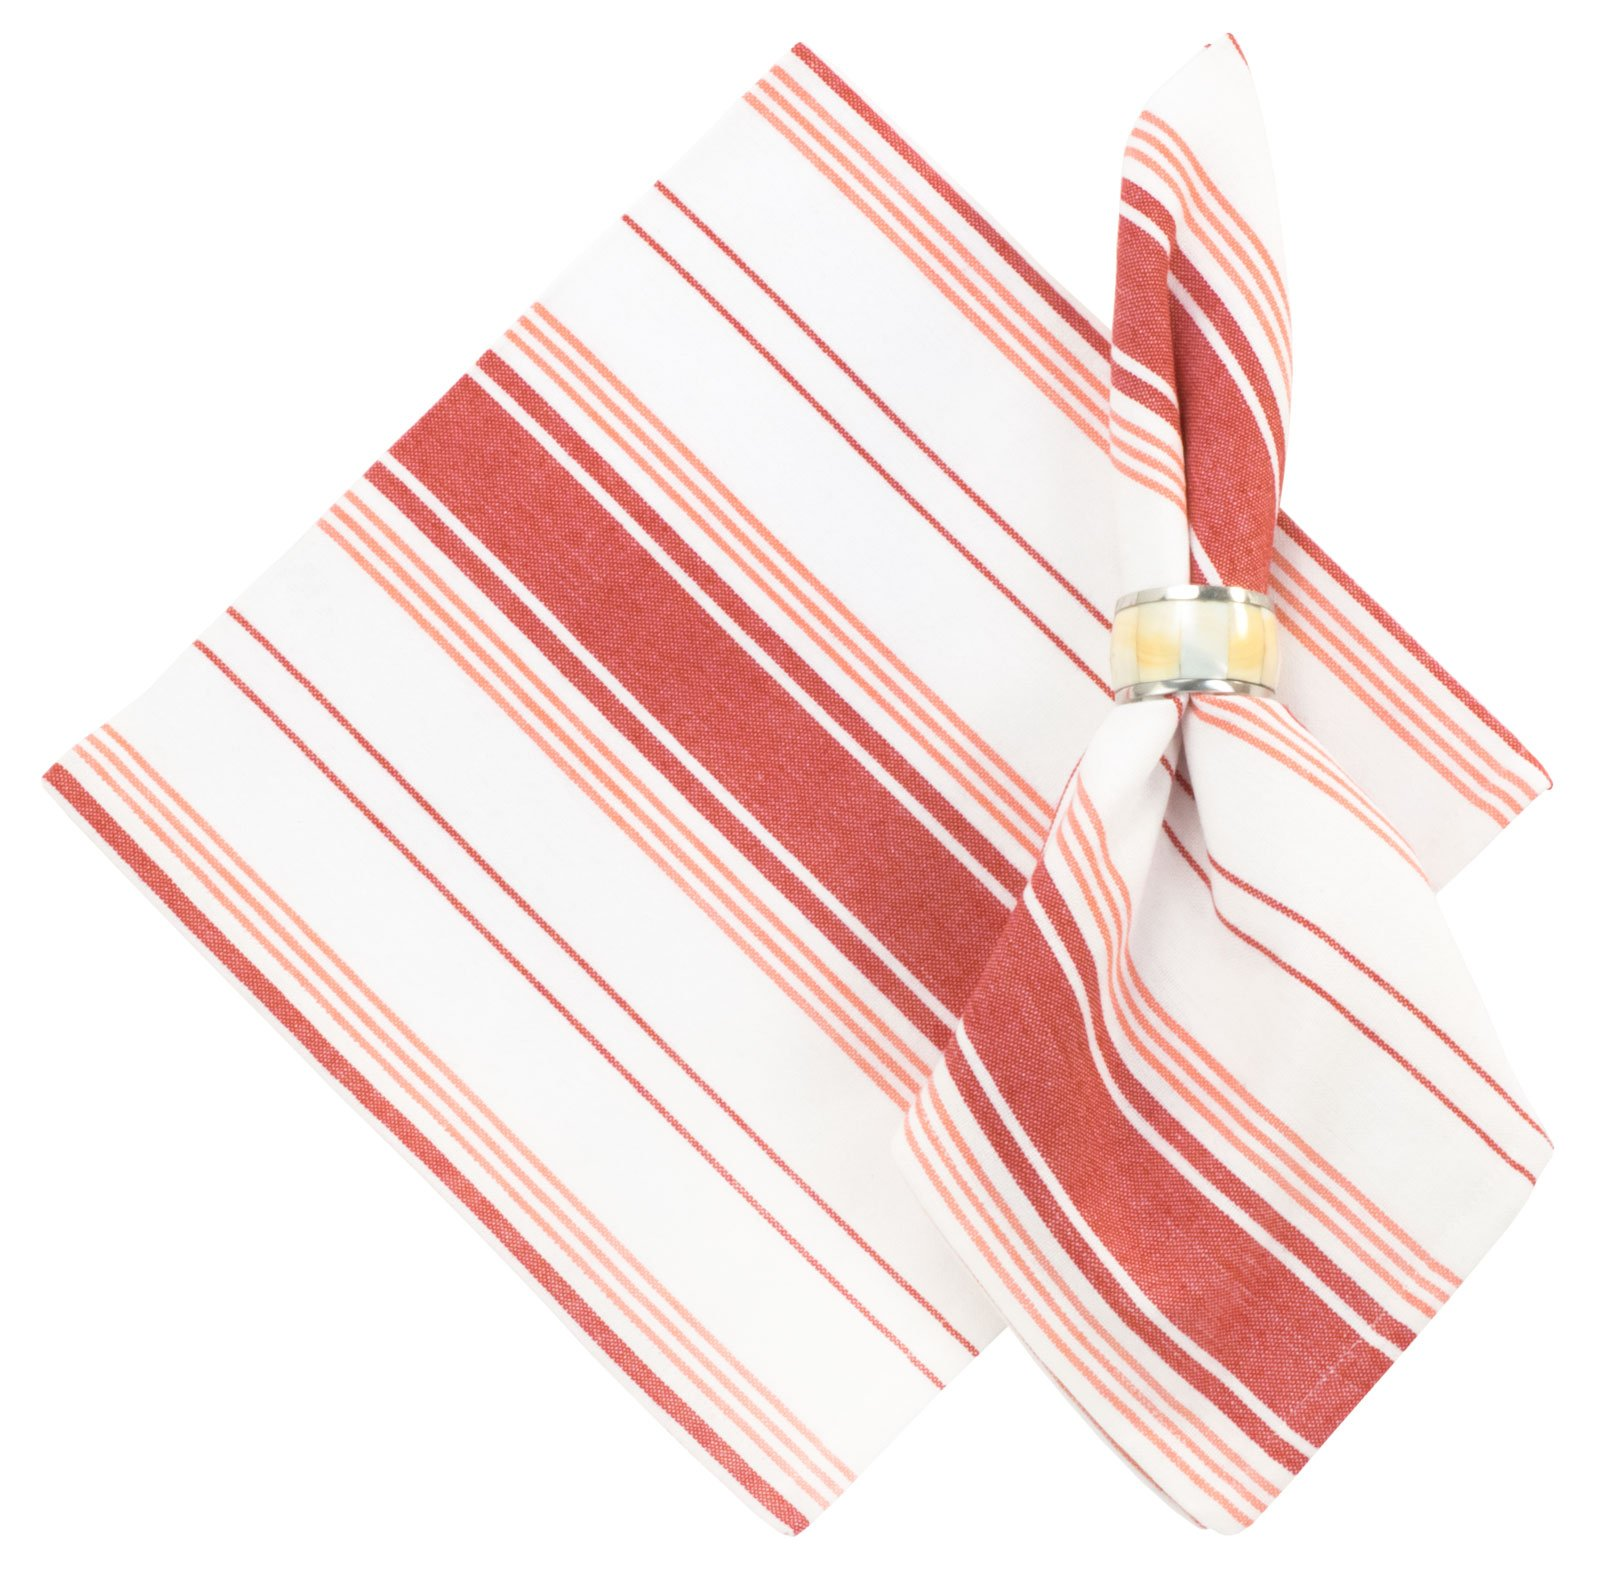 Traders and Company 100% Cotton Red & White Striped Napkin (Set of 6), Galley Red, 22''L x 22''W